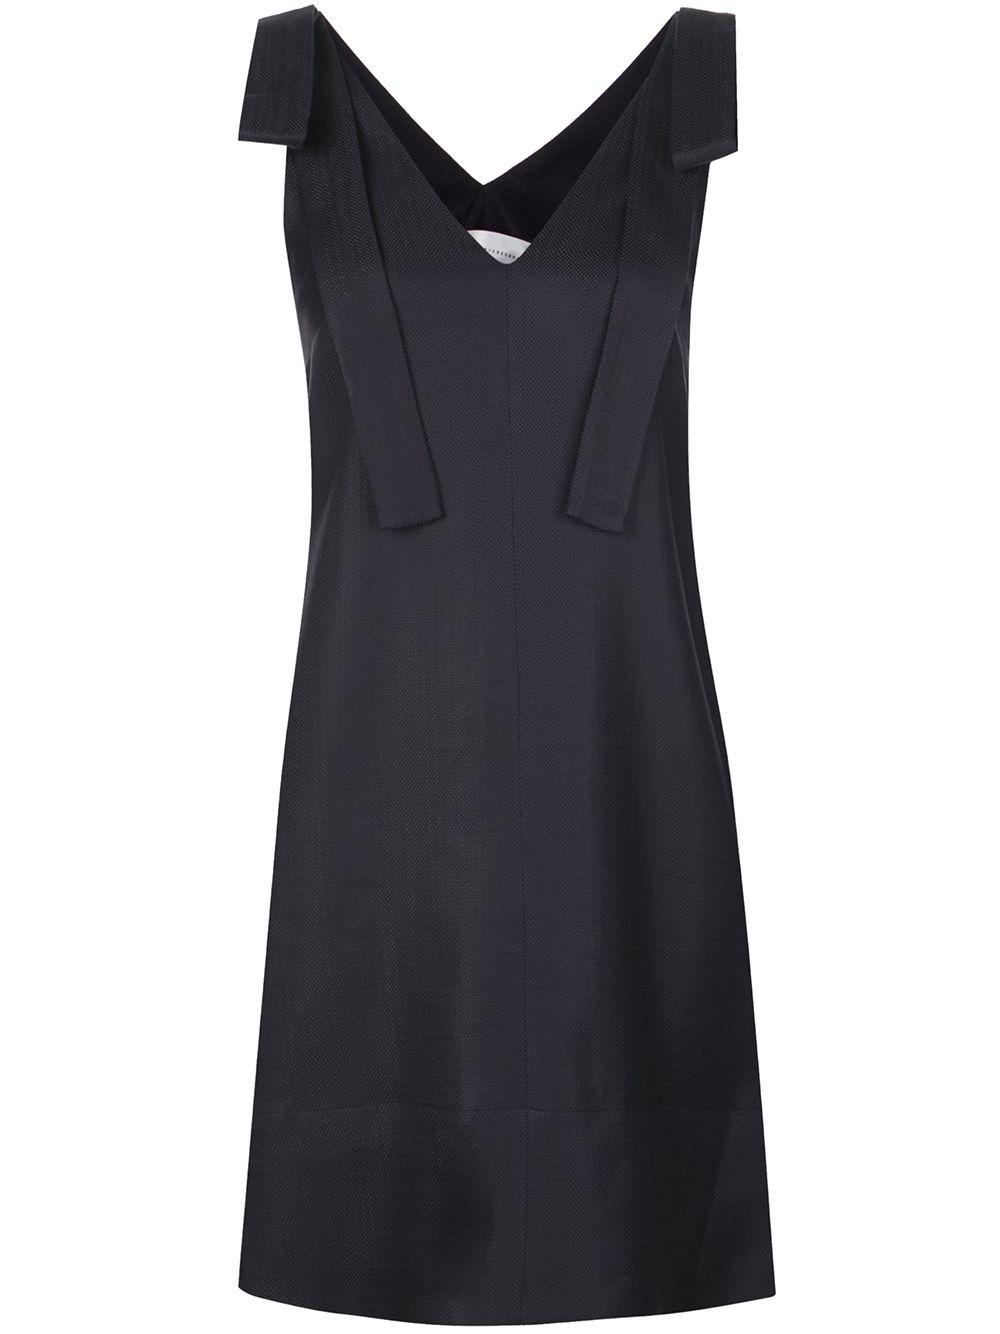 Sleeveless Tie Shoulder Dress